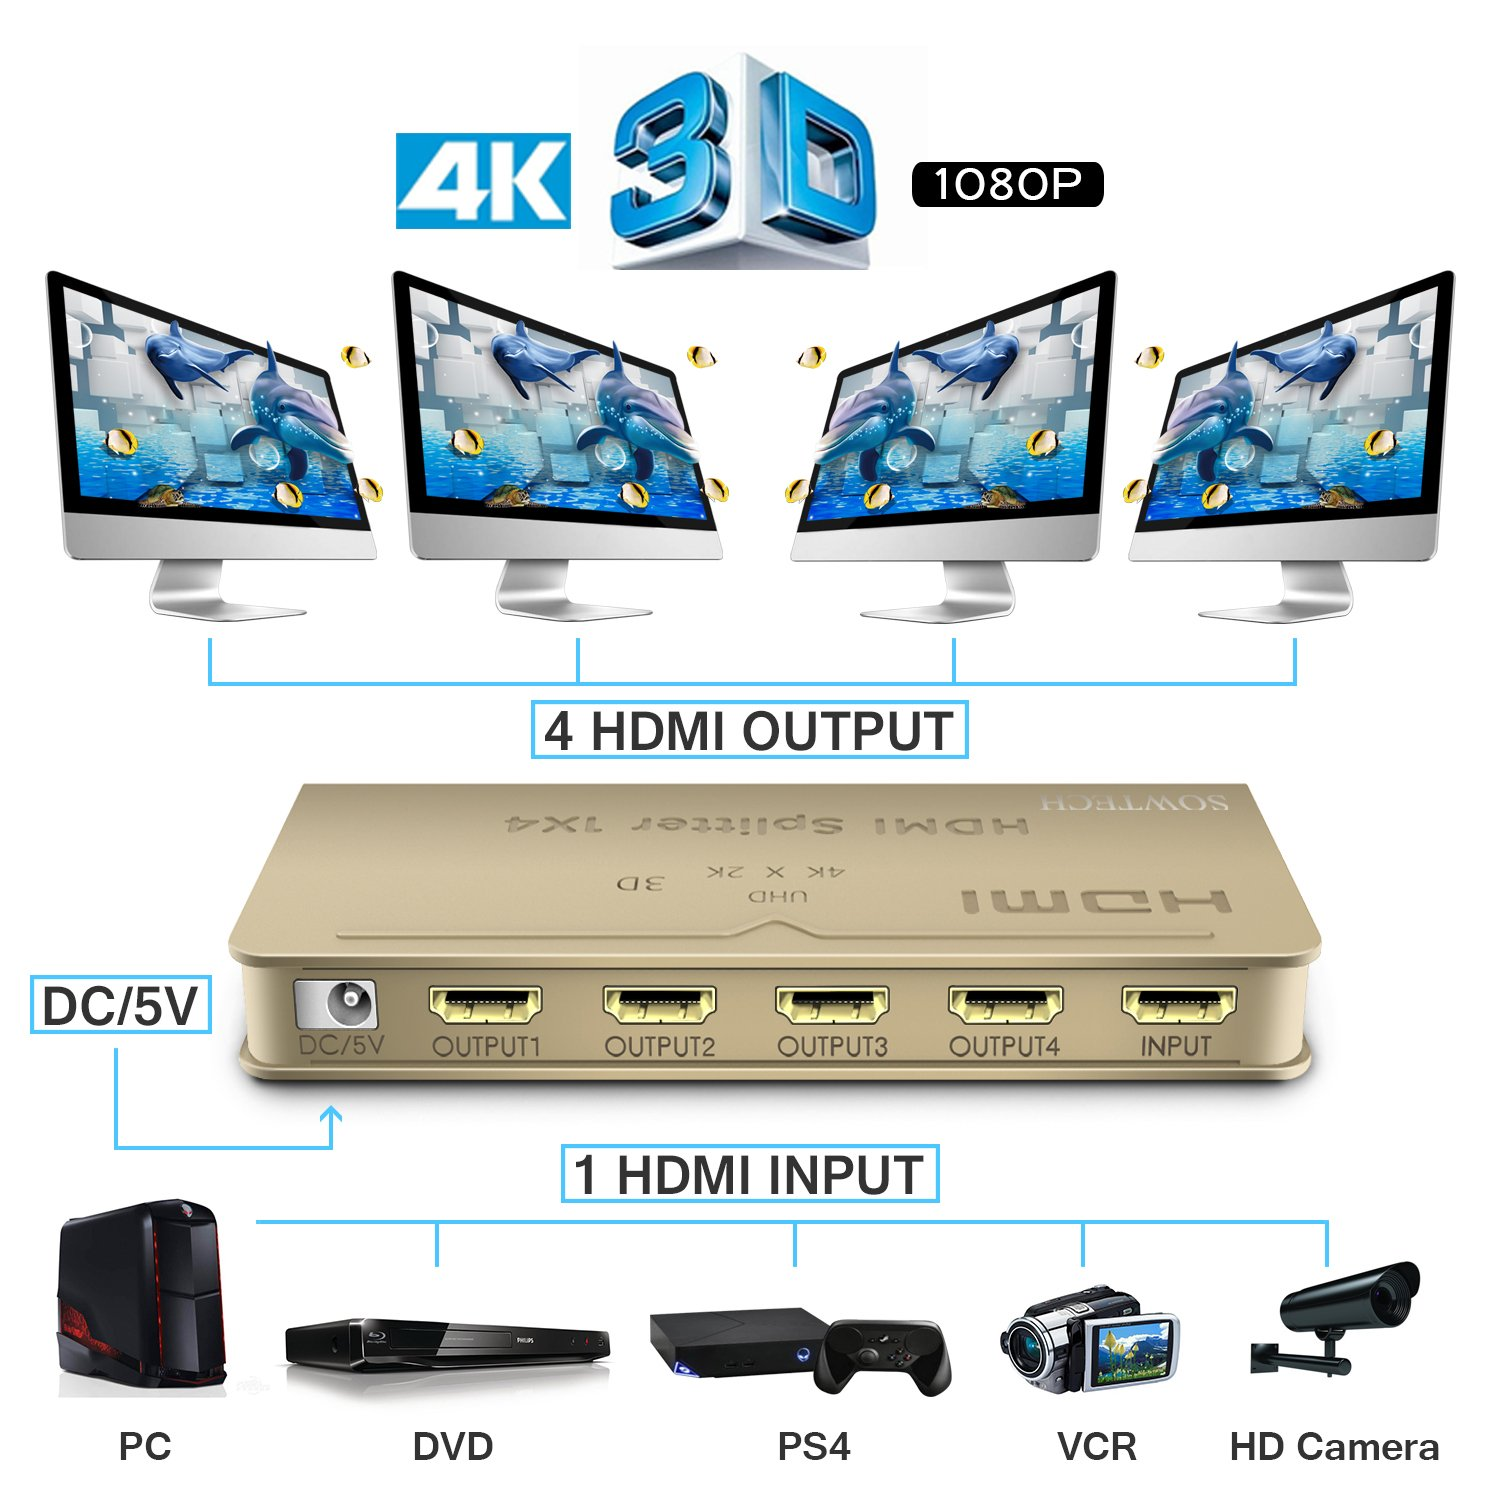 HDMI Splitter SOWTECH 1X4 Ports Powered V1.4b Video Converter with Full Ultra HD 1080P 4K/2K and 3D Resolutions (1 Input to 4 Outputs) - Gold